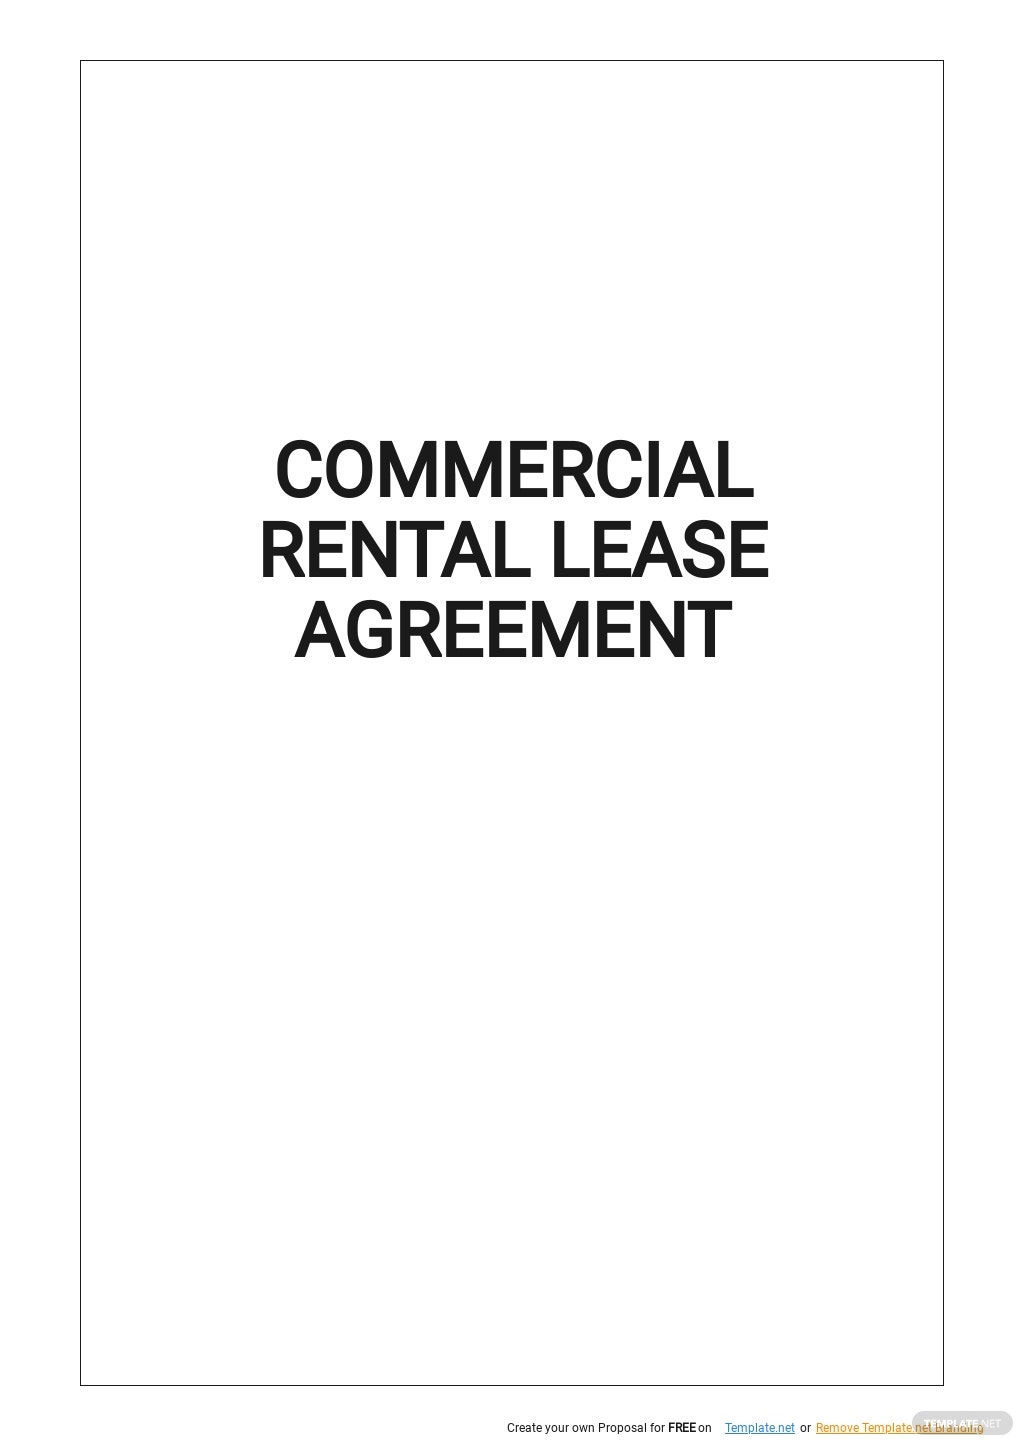 Sample Commercial Rental Lease Agreement Template.jpe